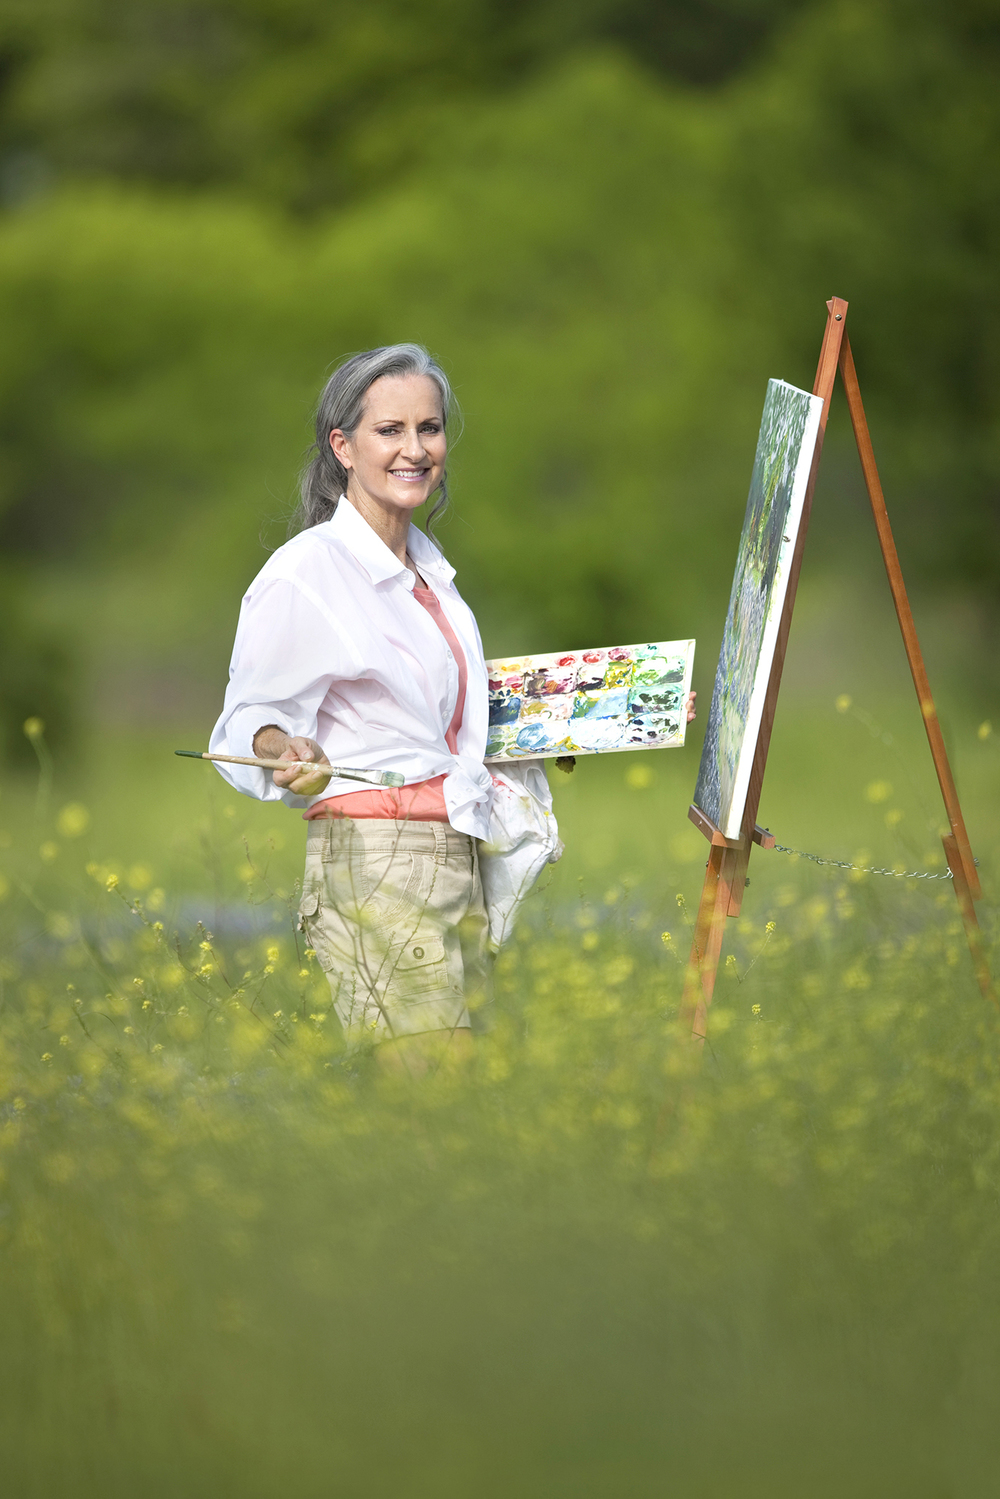 Woman in Wildflower Garden Painting